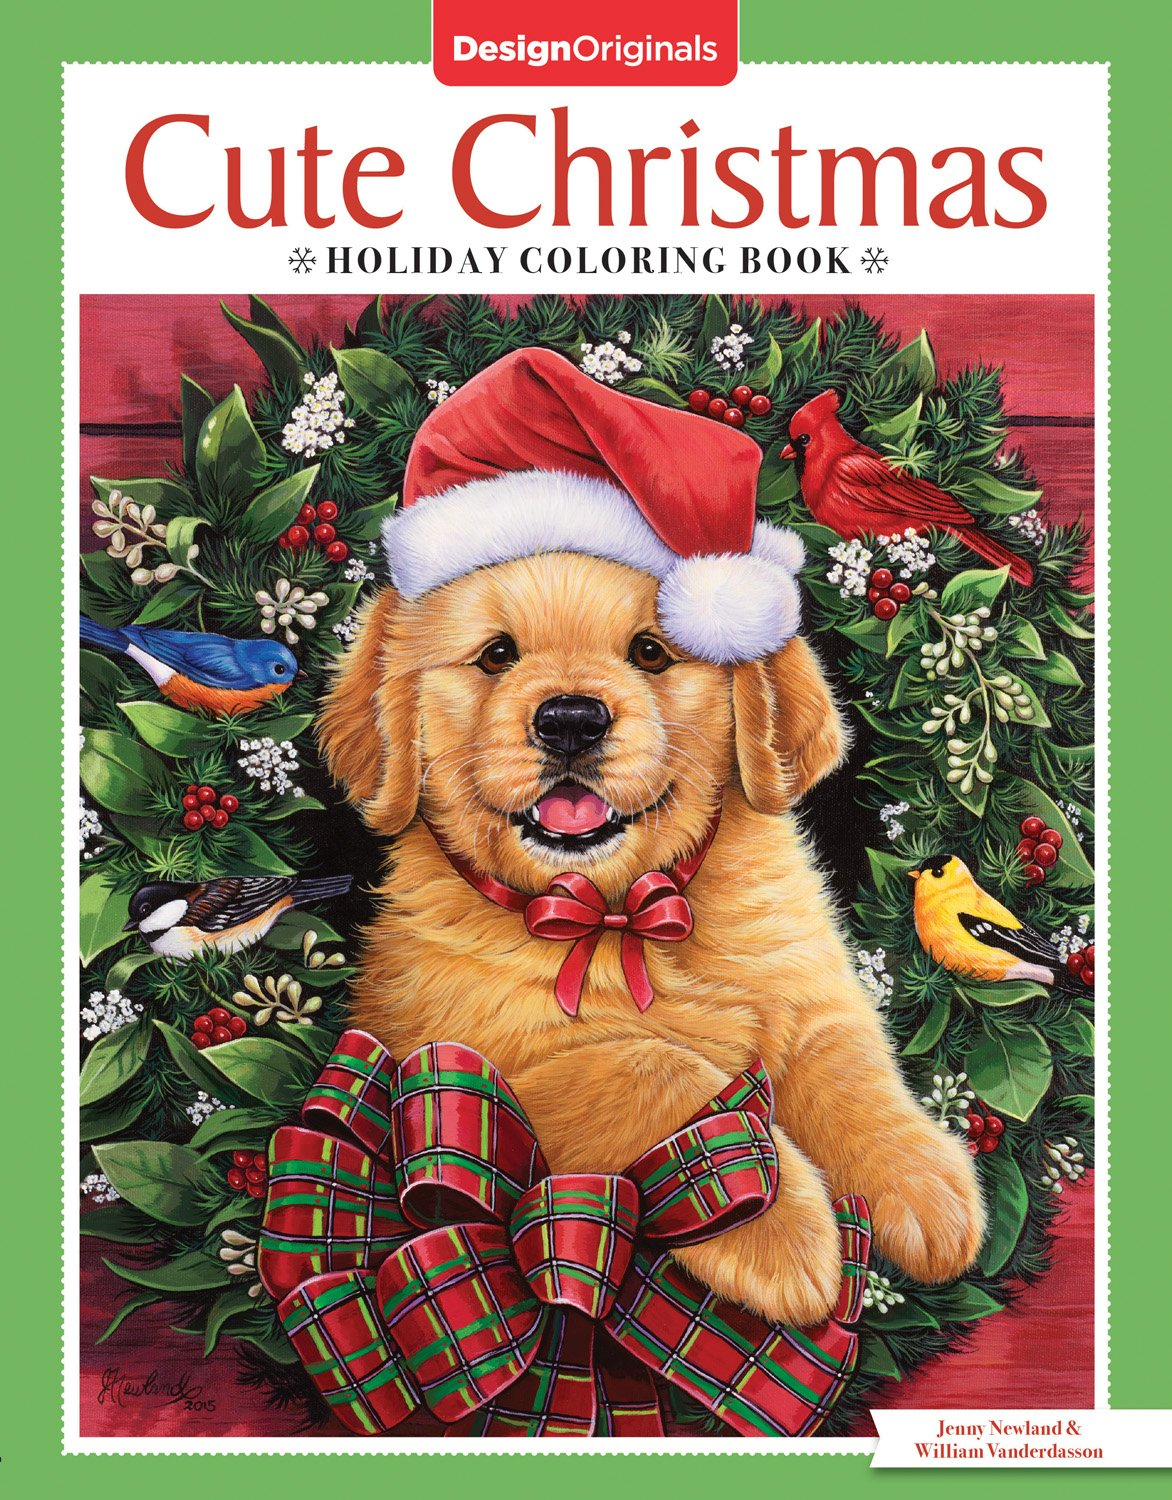 Cute Christmas Puppies.Amazon Com Cute Christmas Holiday Coloring Book Design